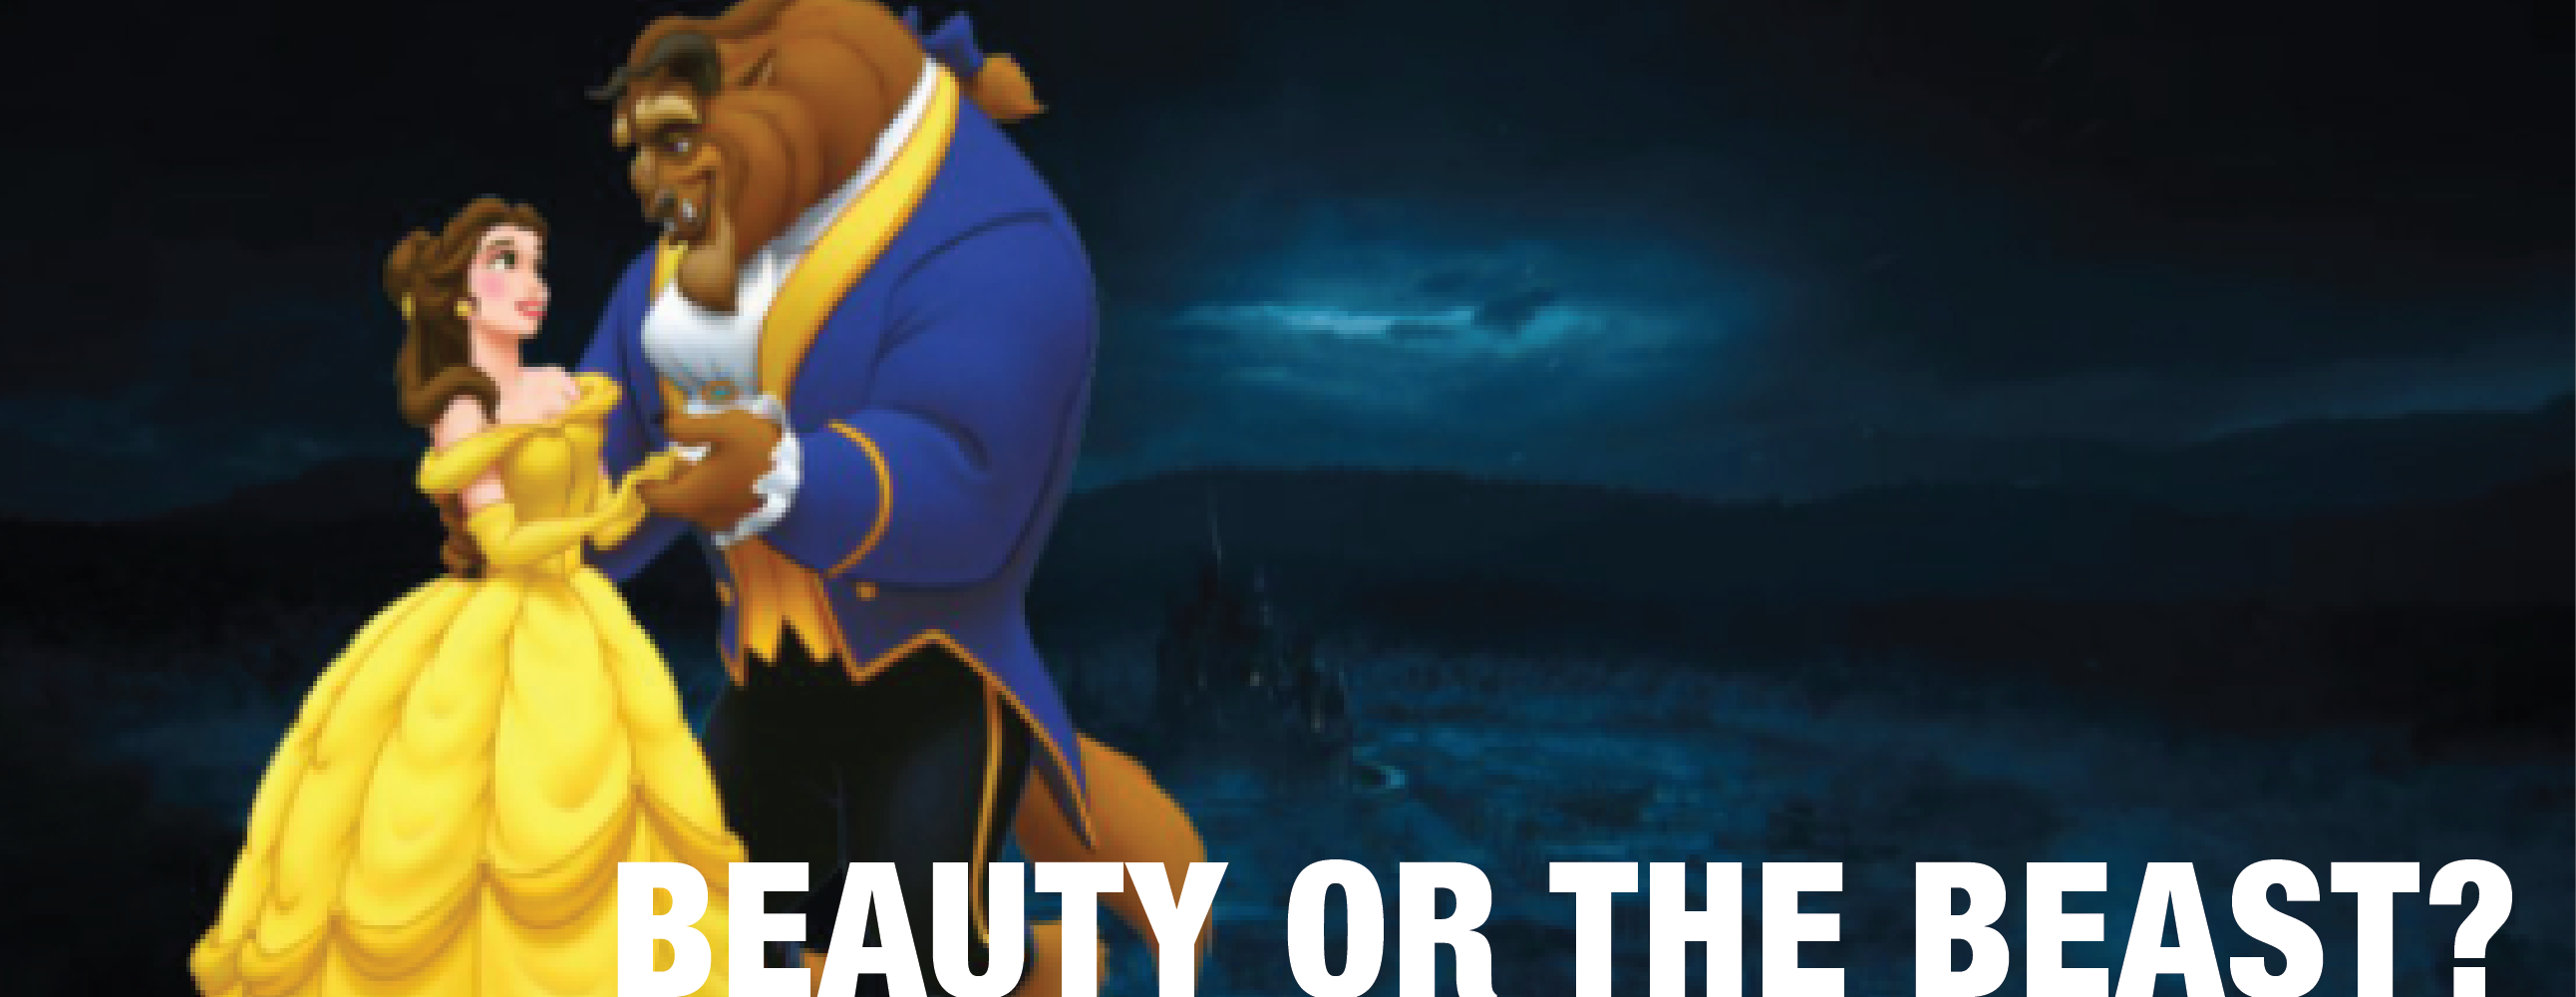 Beauty or the Beast?